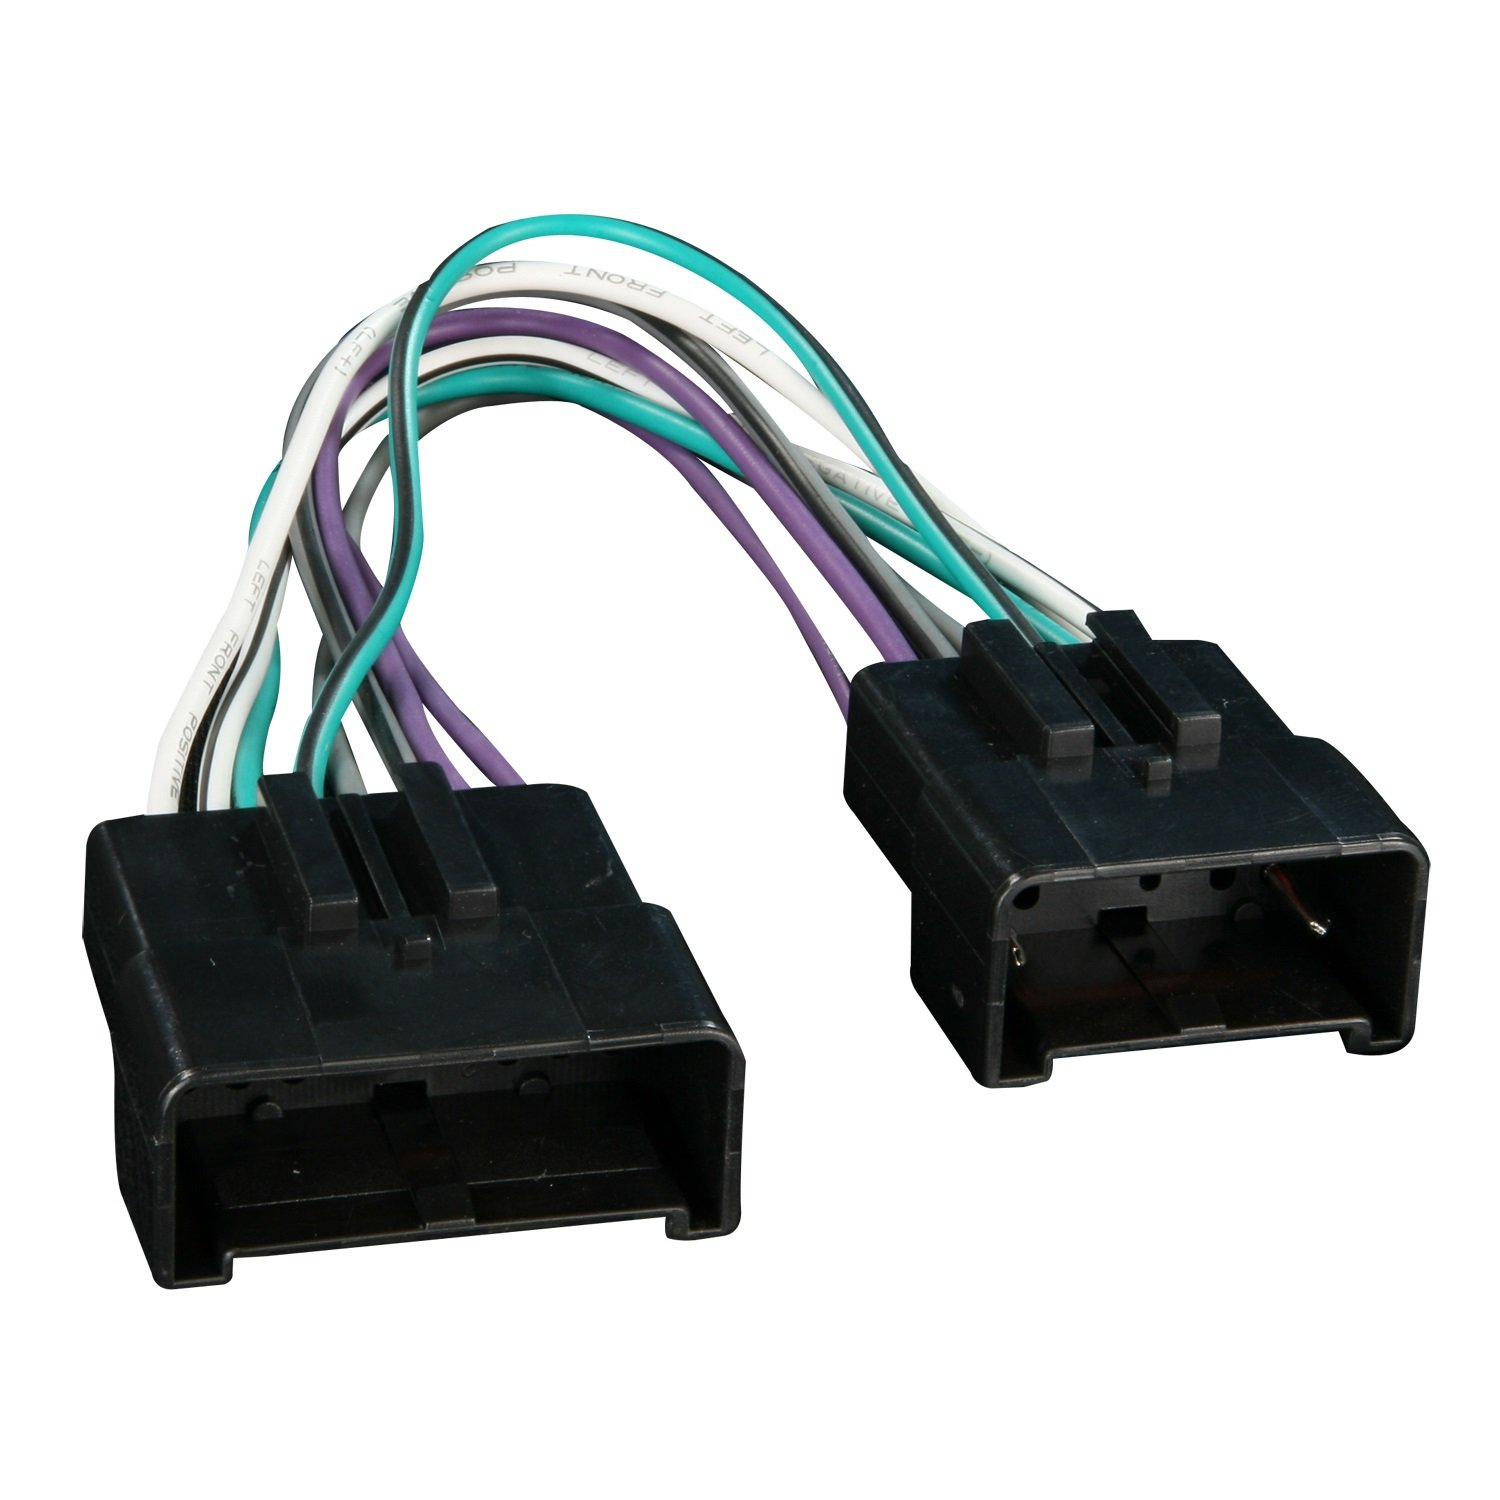 71pSHbvTl0L._SL1500_ amazon com metra 70 5513 radio wiring harness for ford amplifier Dash Kit for F150 at bayanpartner.co